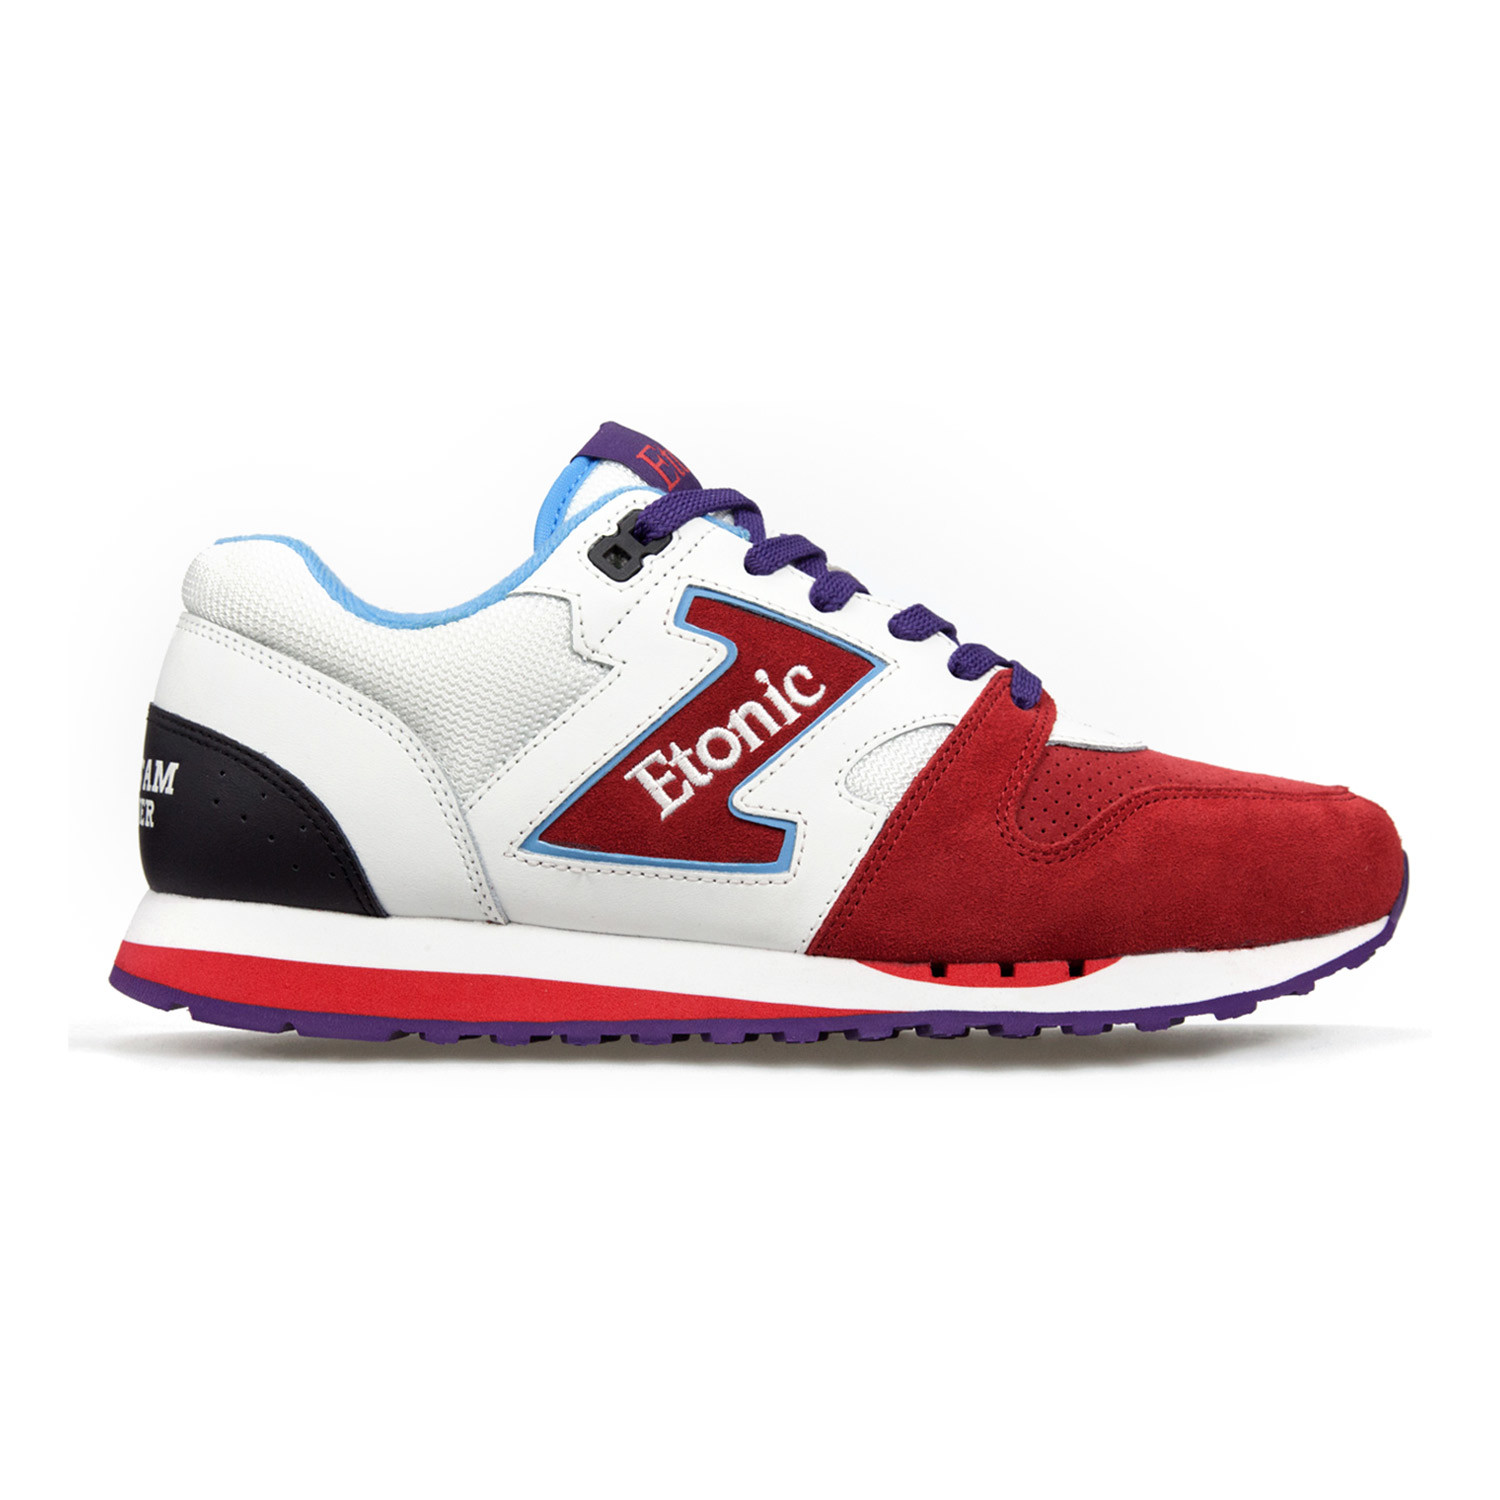 Promotions Etonic Trans Am Trainers 54vN1386v388